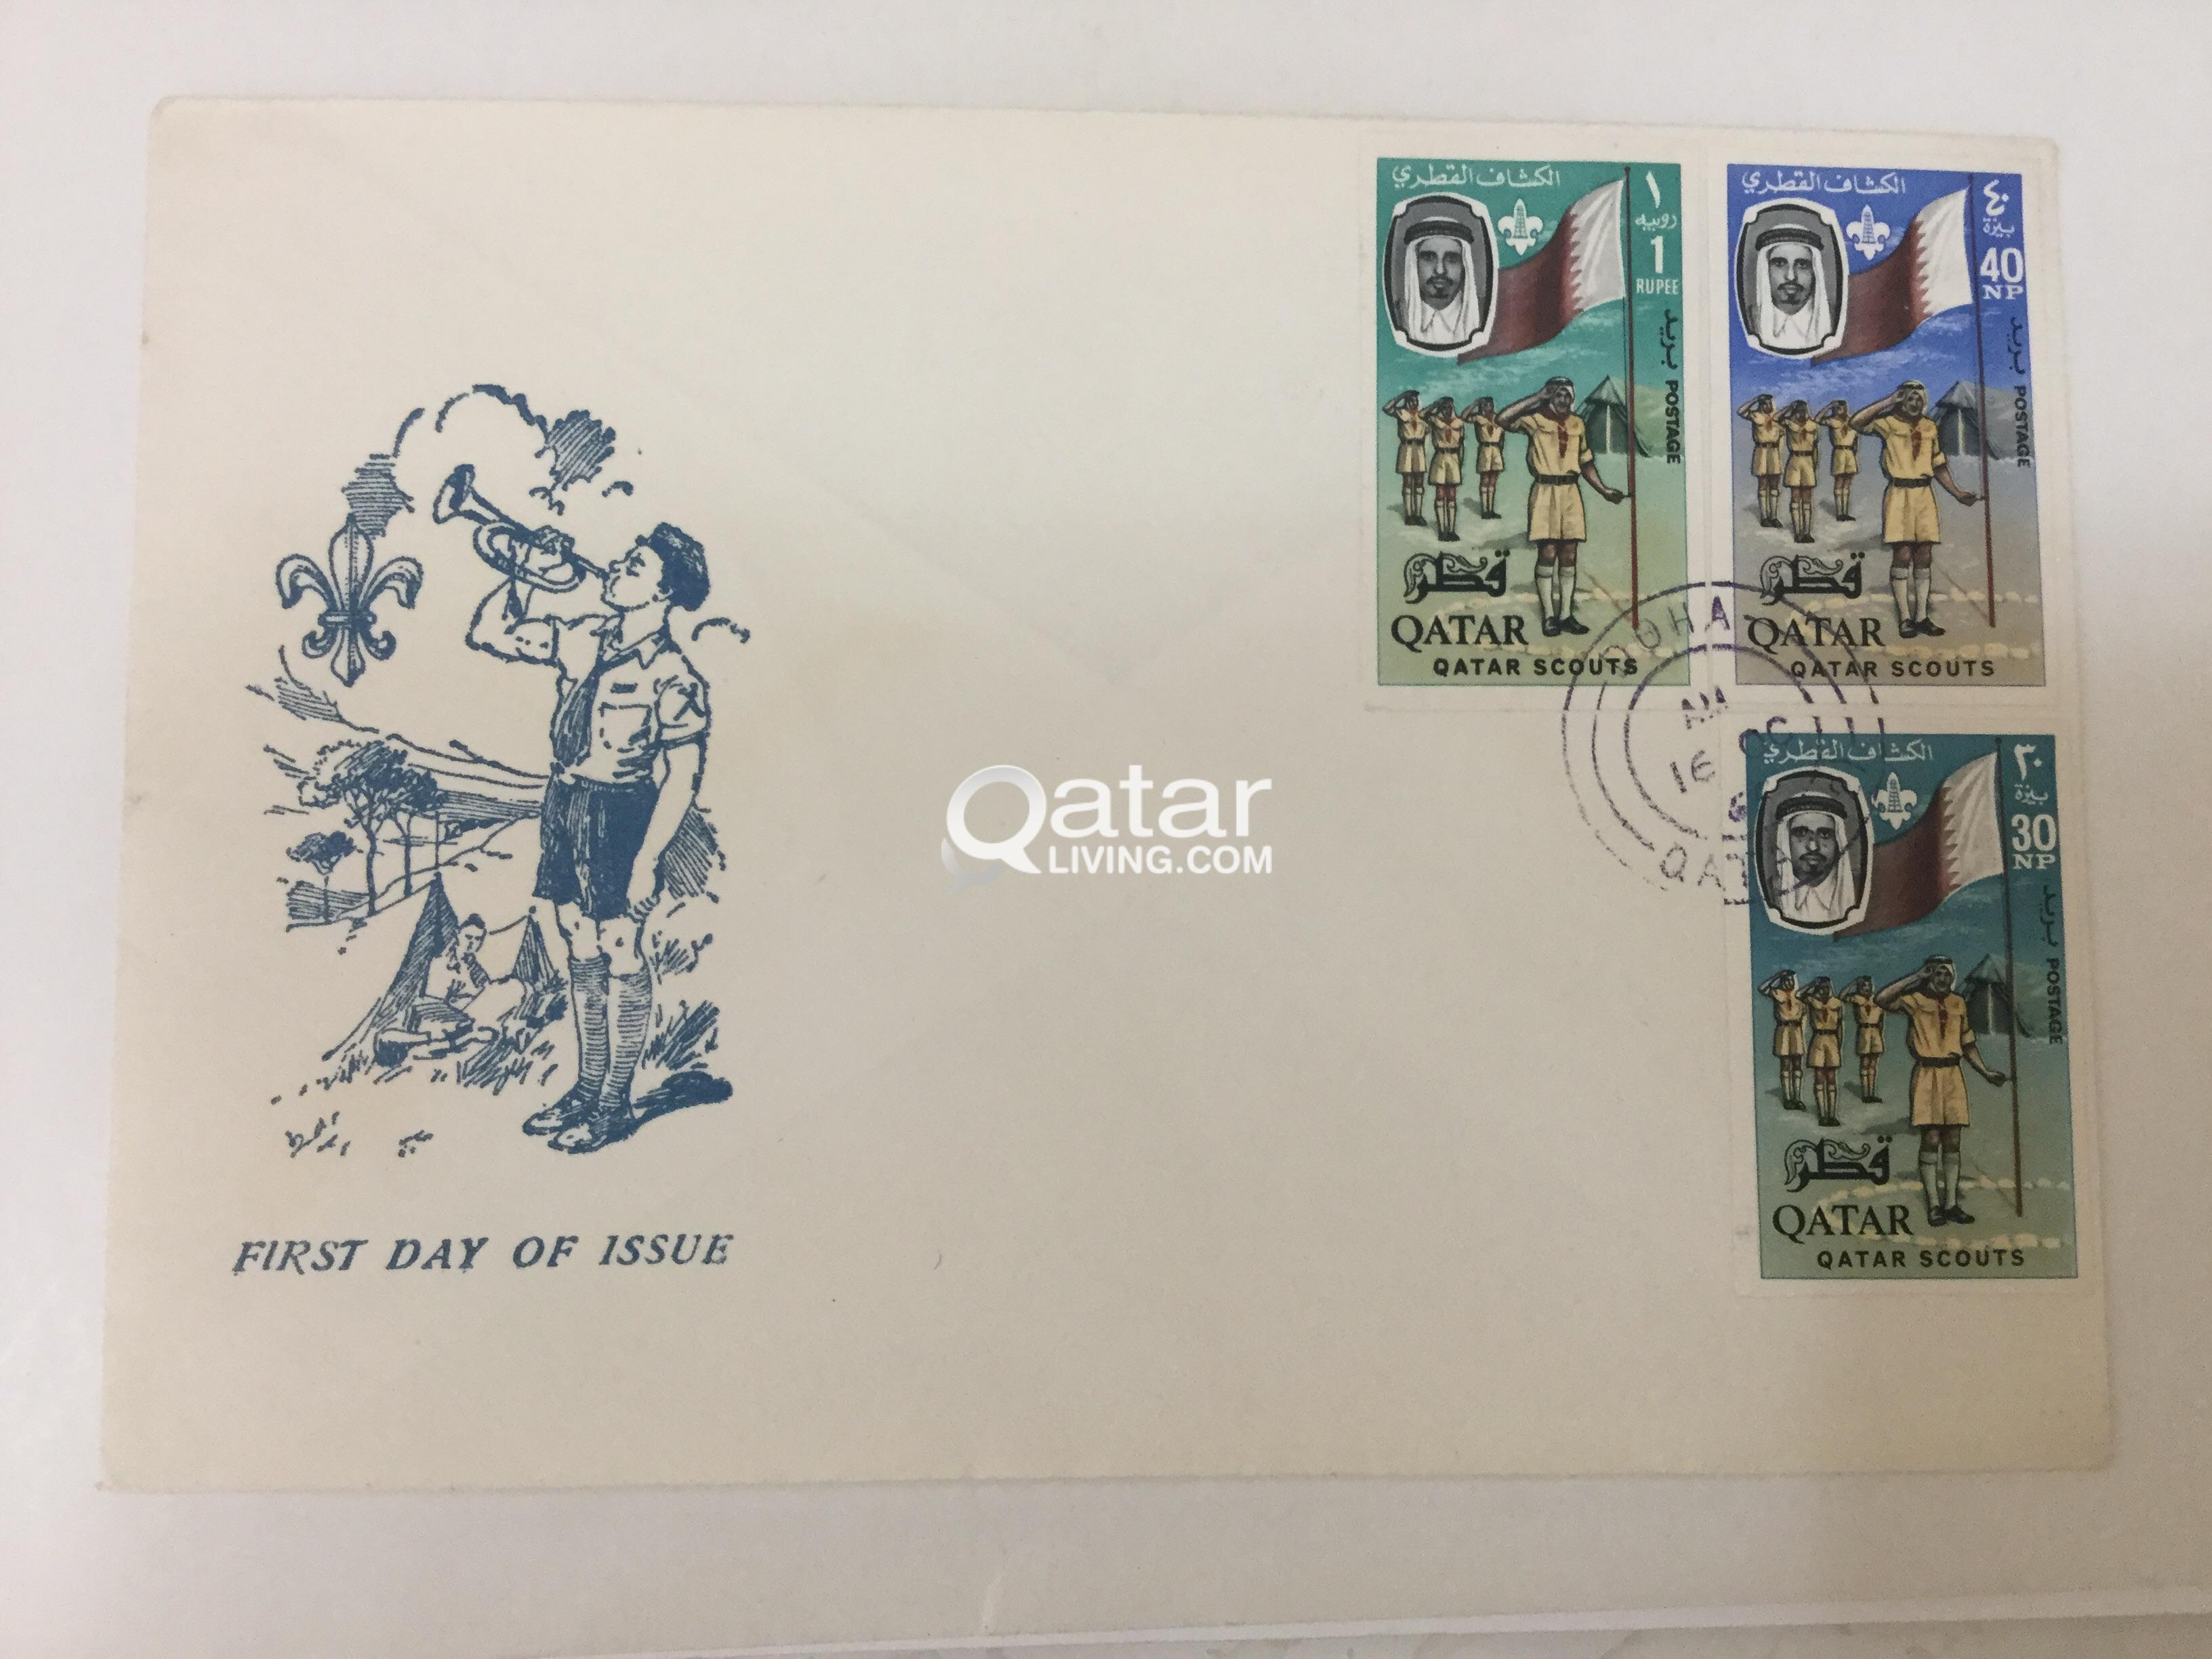 Stamps for sale special offer | Qatar Living